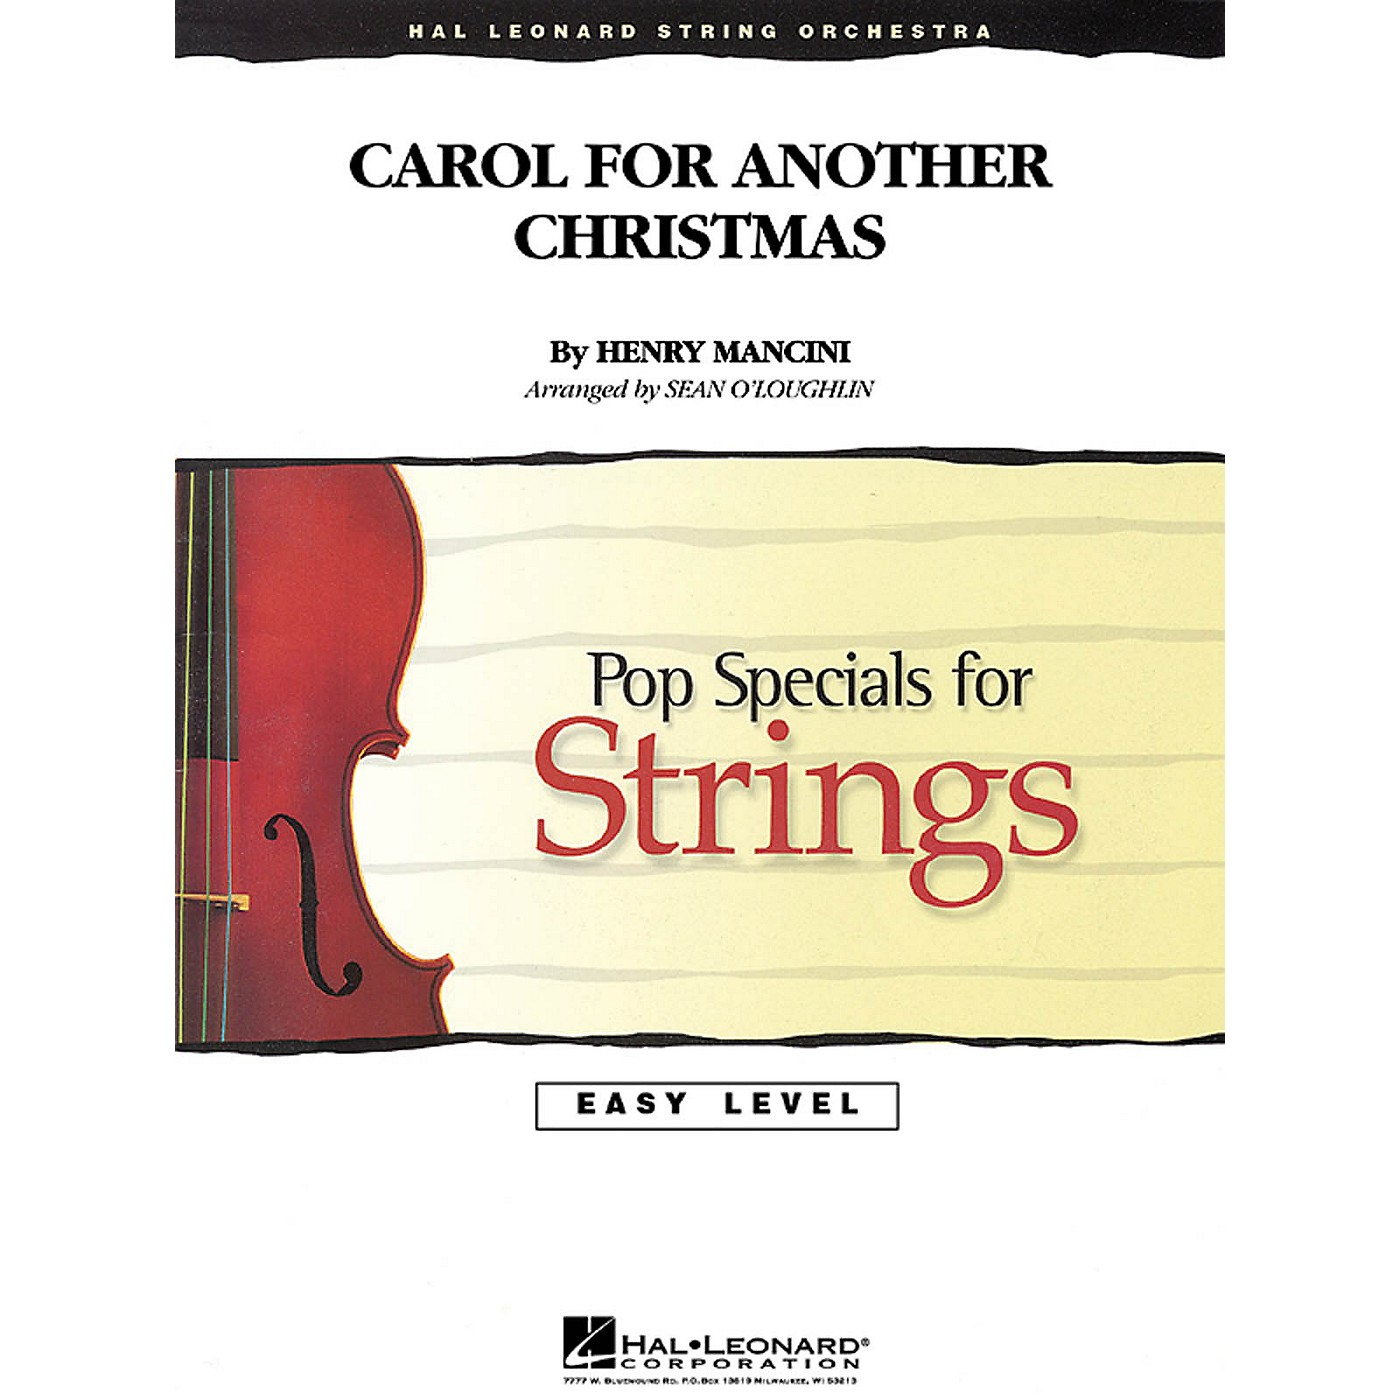 Hal Leonard Carol for Another Christmas Easy Pop Specials For Strings Series Arranged by Sean O'Loughlin thumbnail